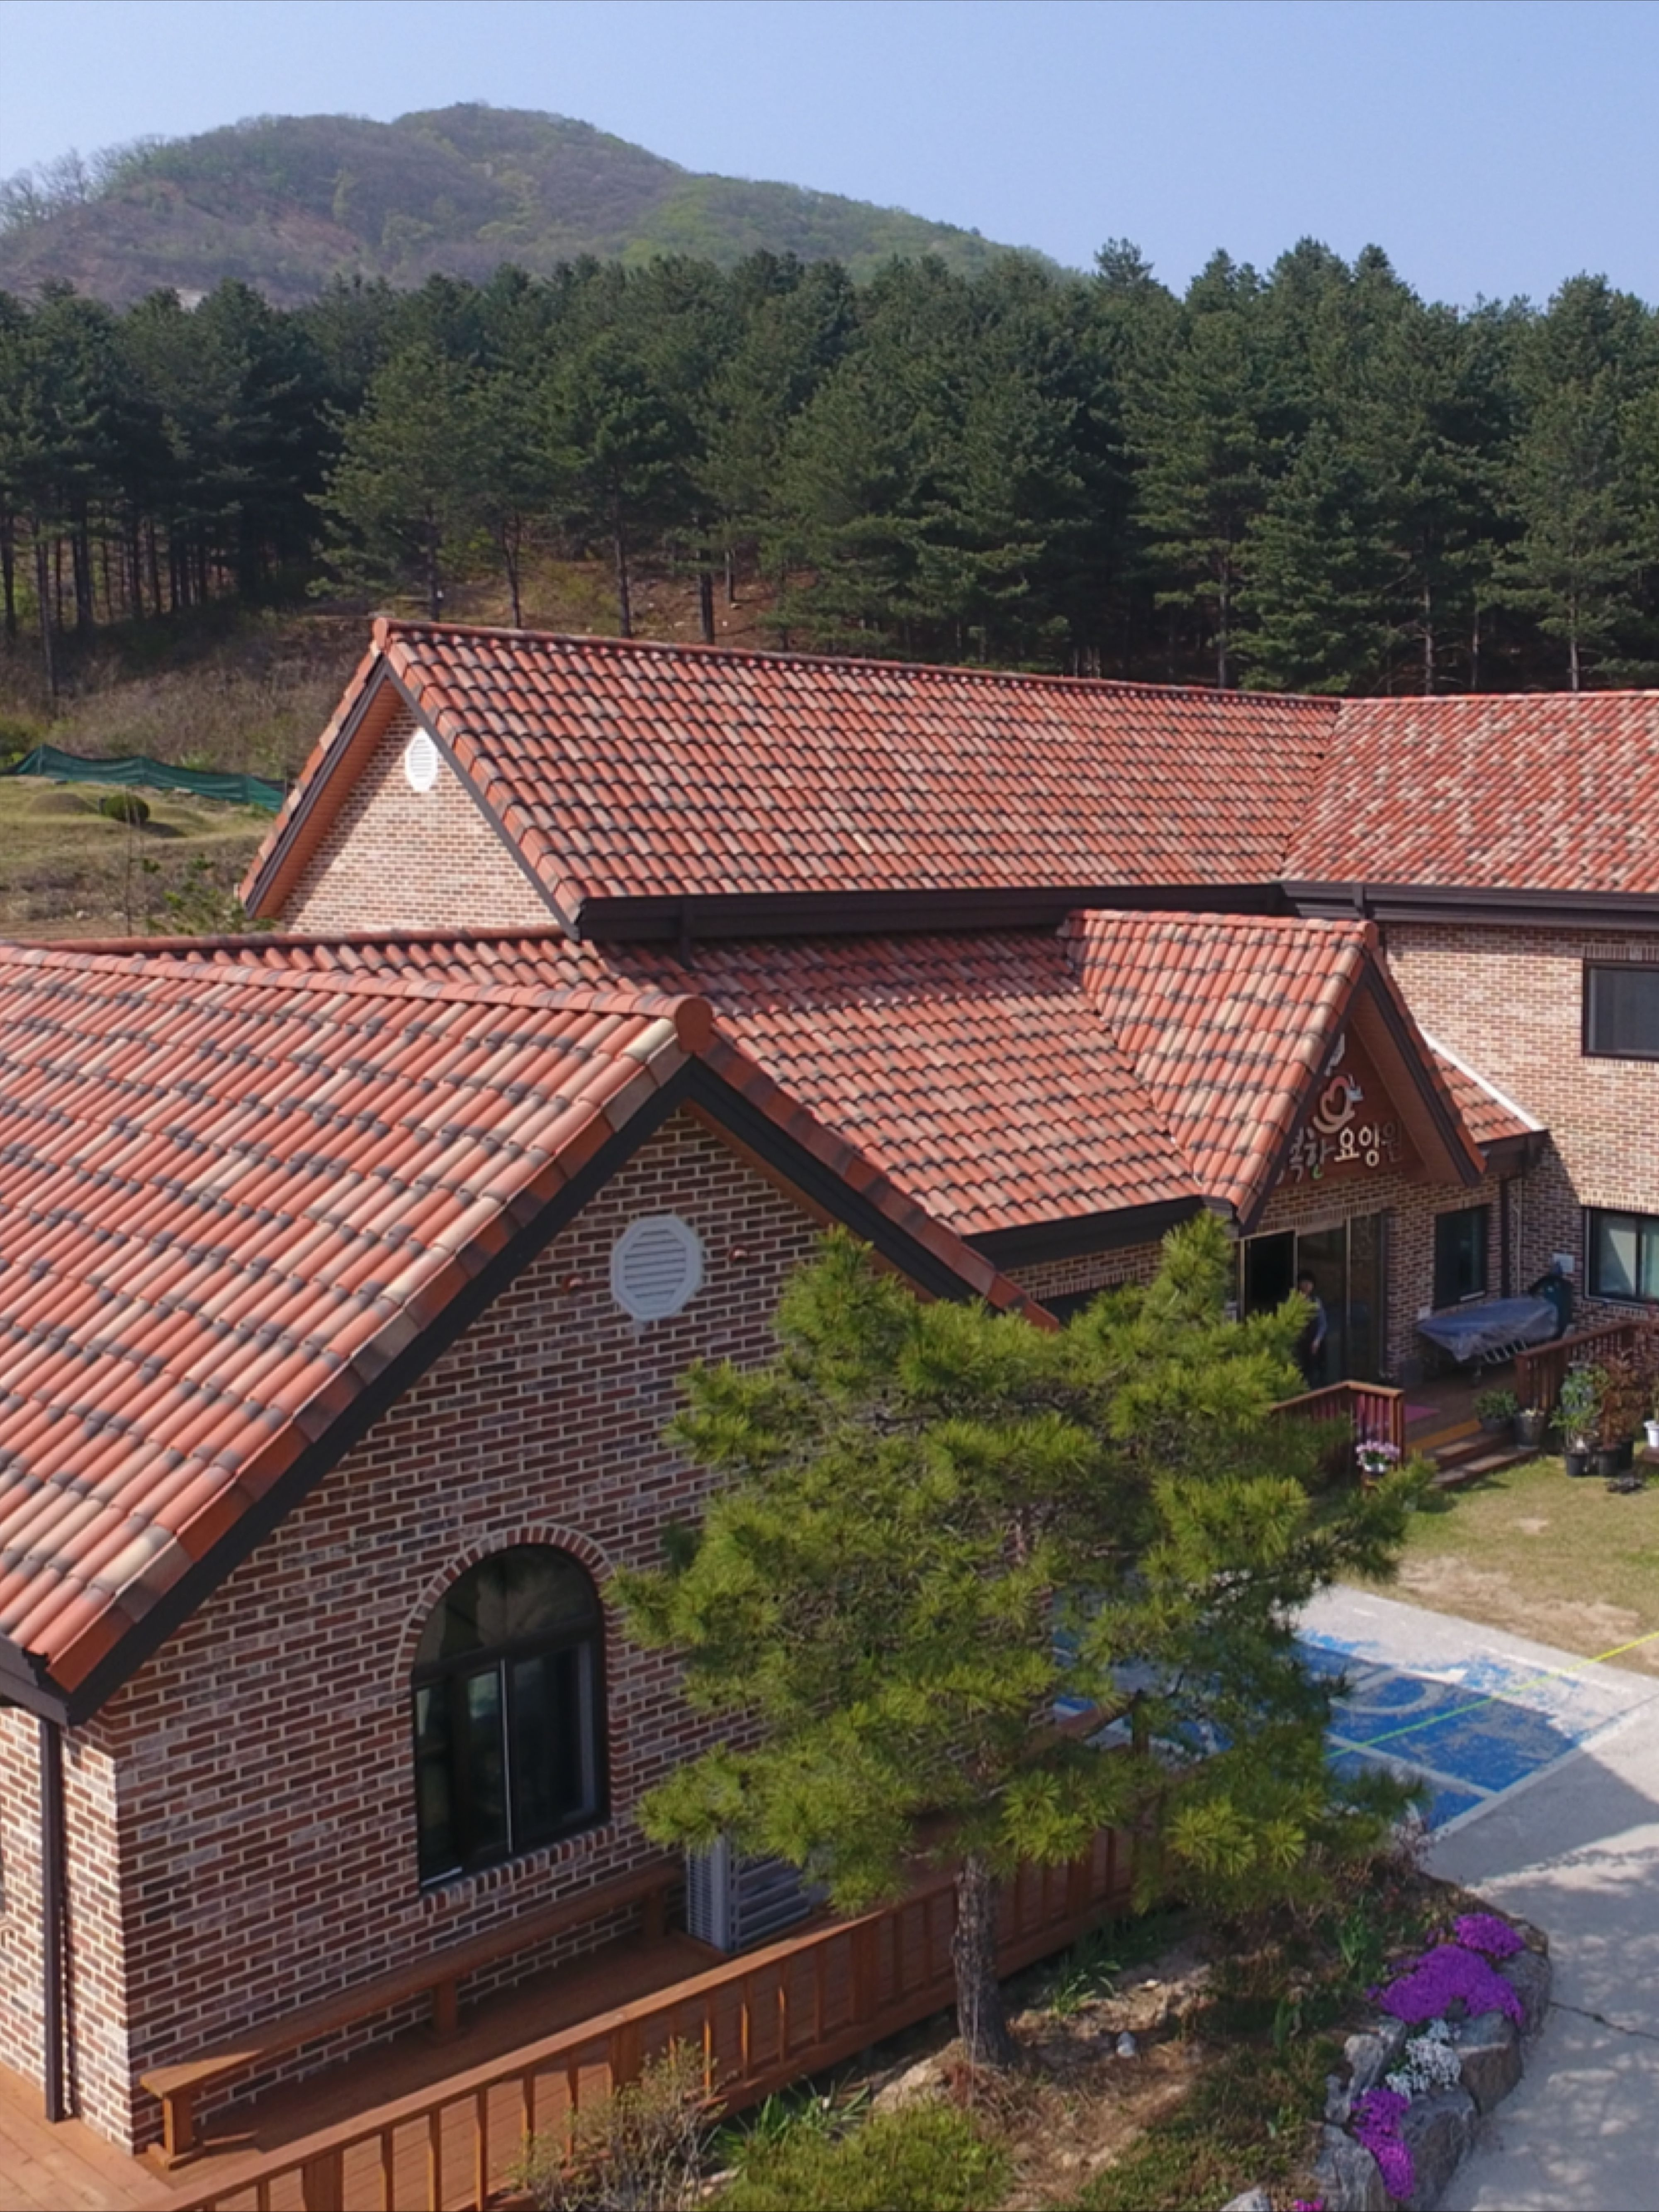 Terreal Roofing Romane Origine In 2020 Clay Roof Tiles Roofing Roofing Systems